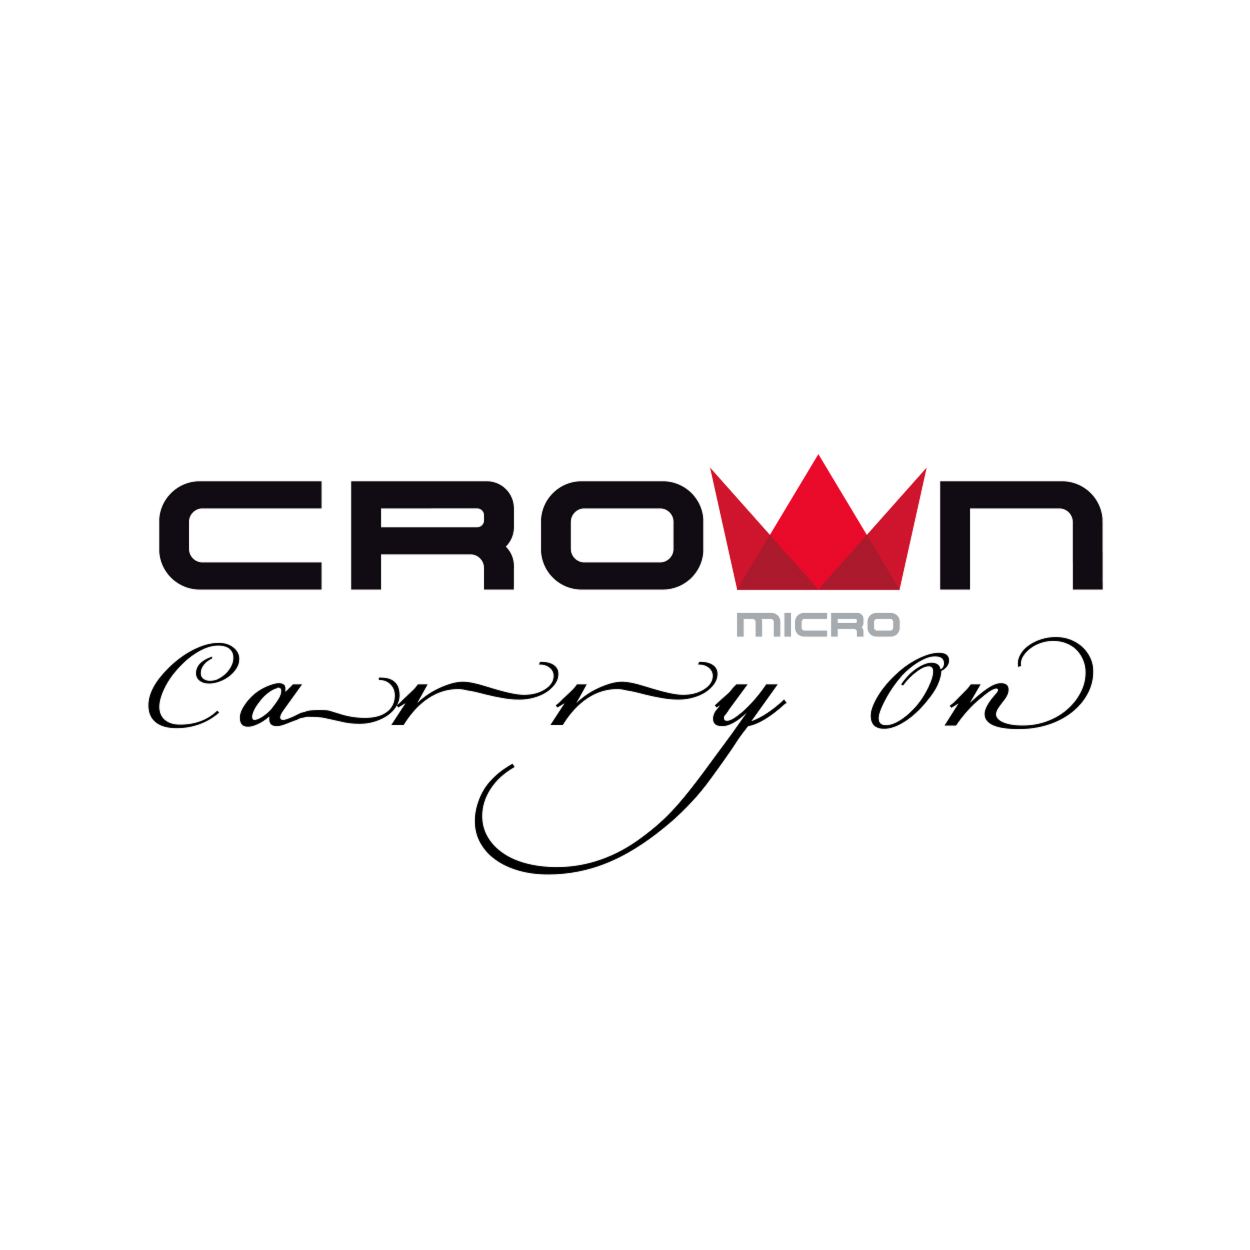 Crown Micro China Limited